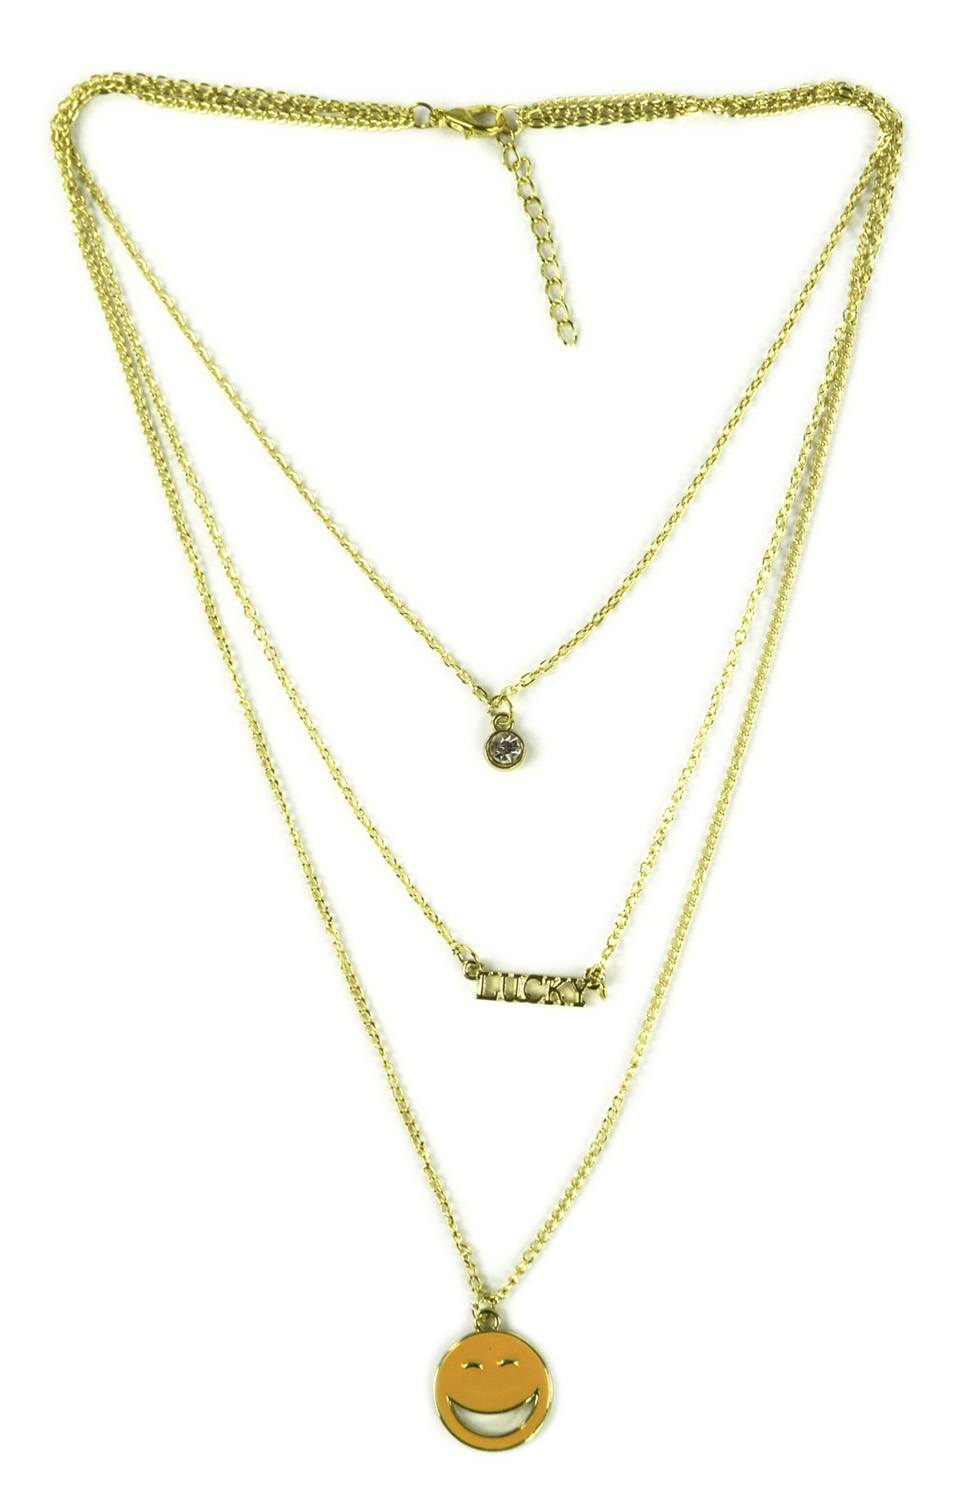 Belle Donne Necklace Long  Multi Chain and Choker  Emoji - Gold